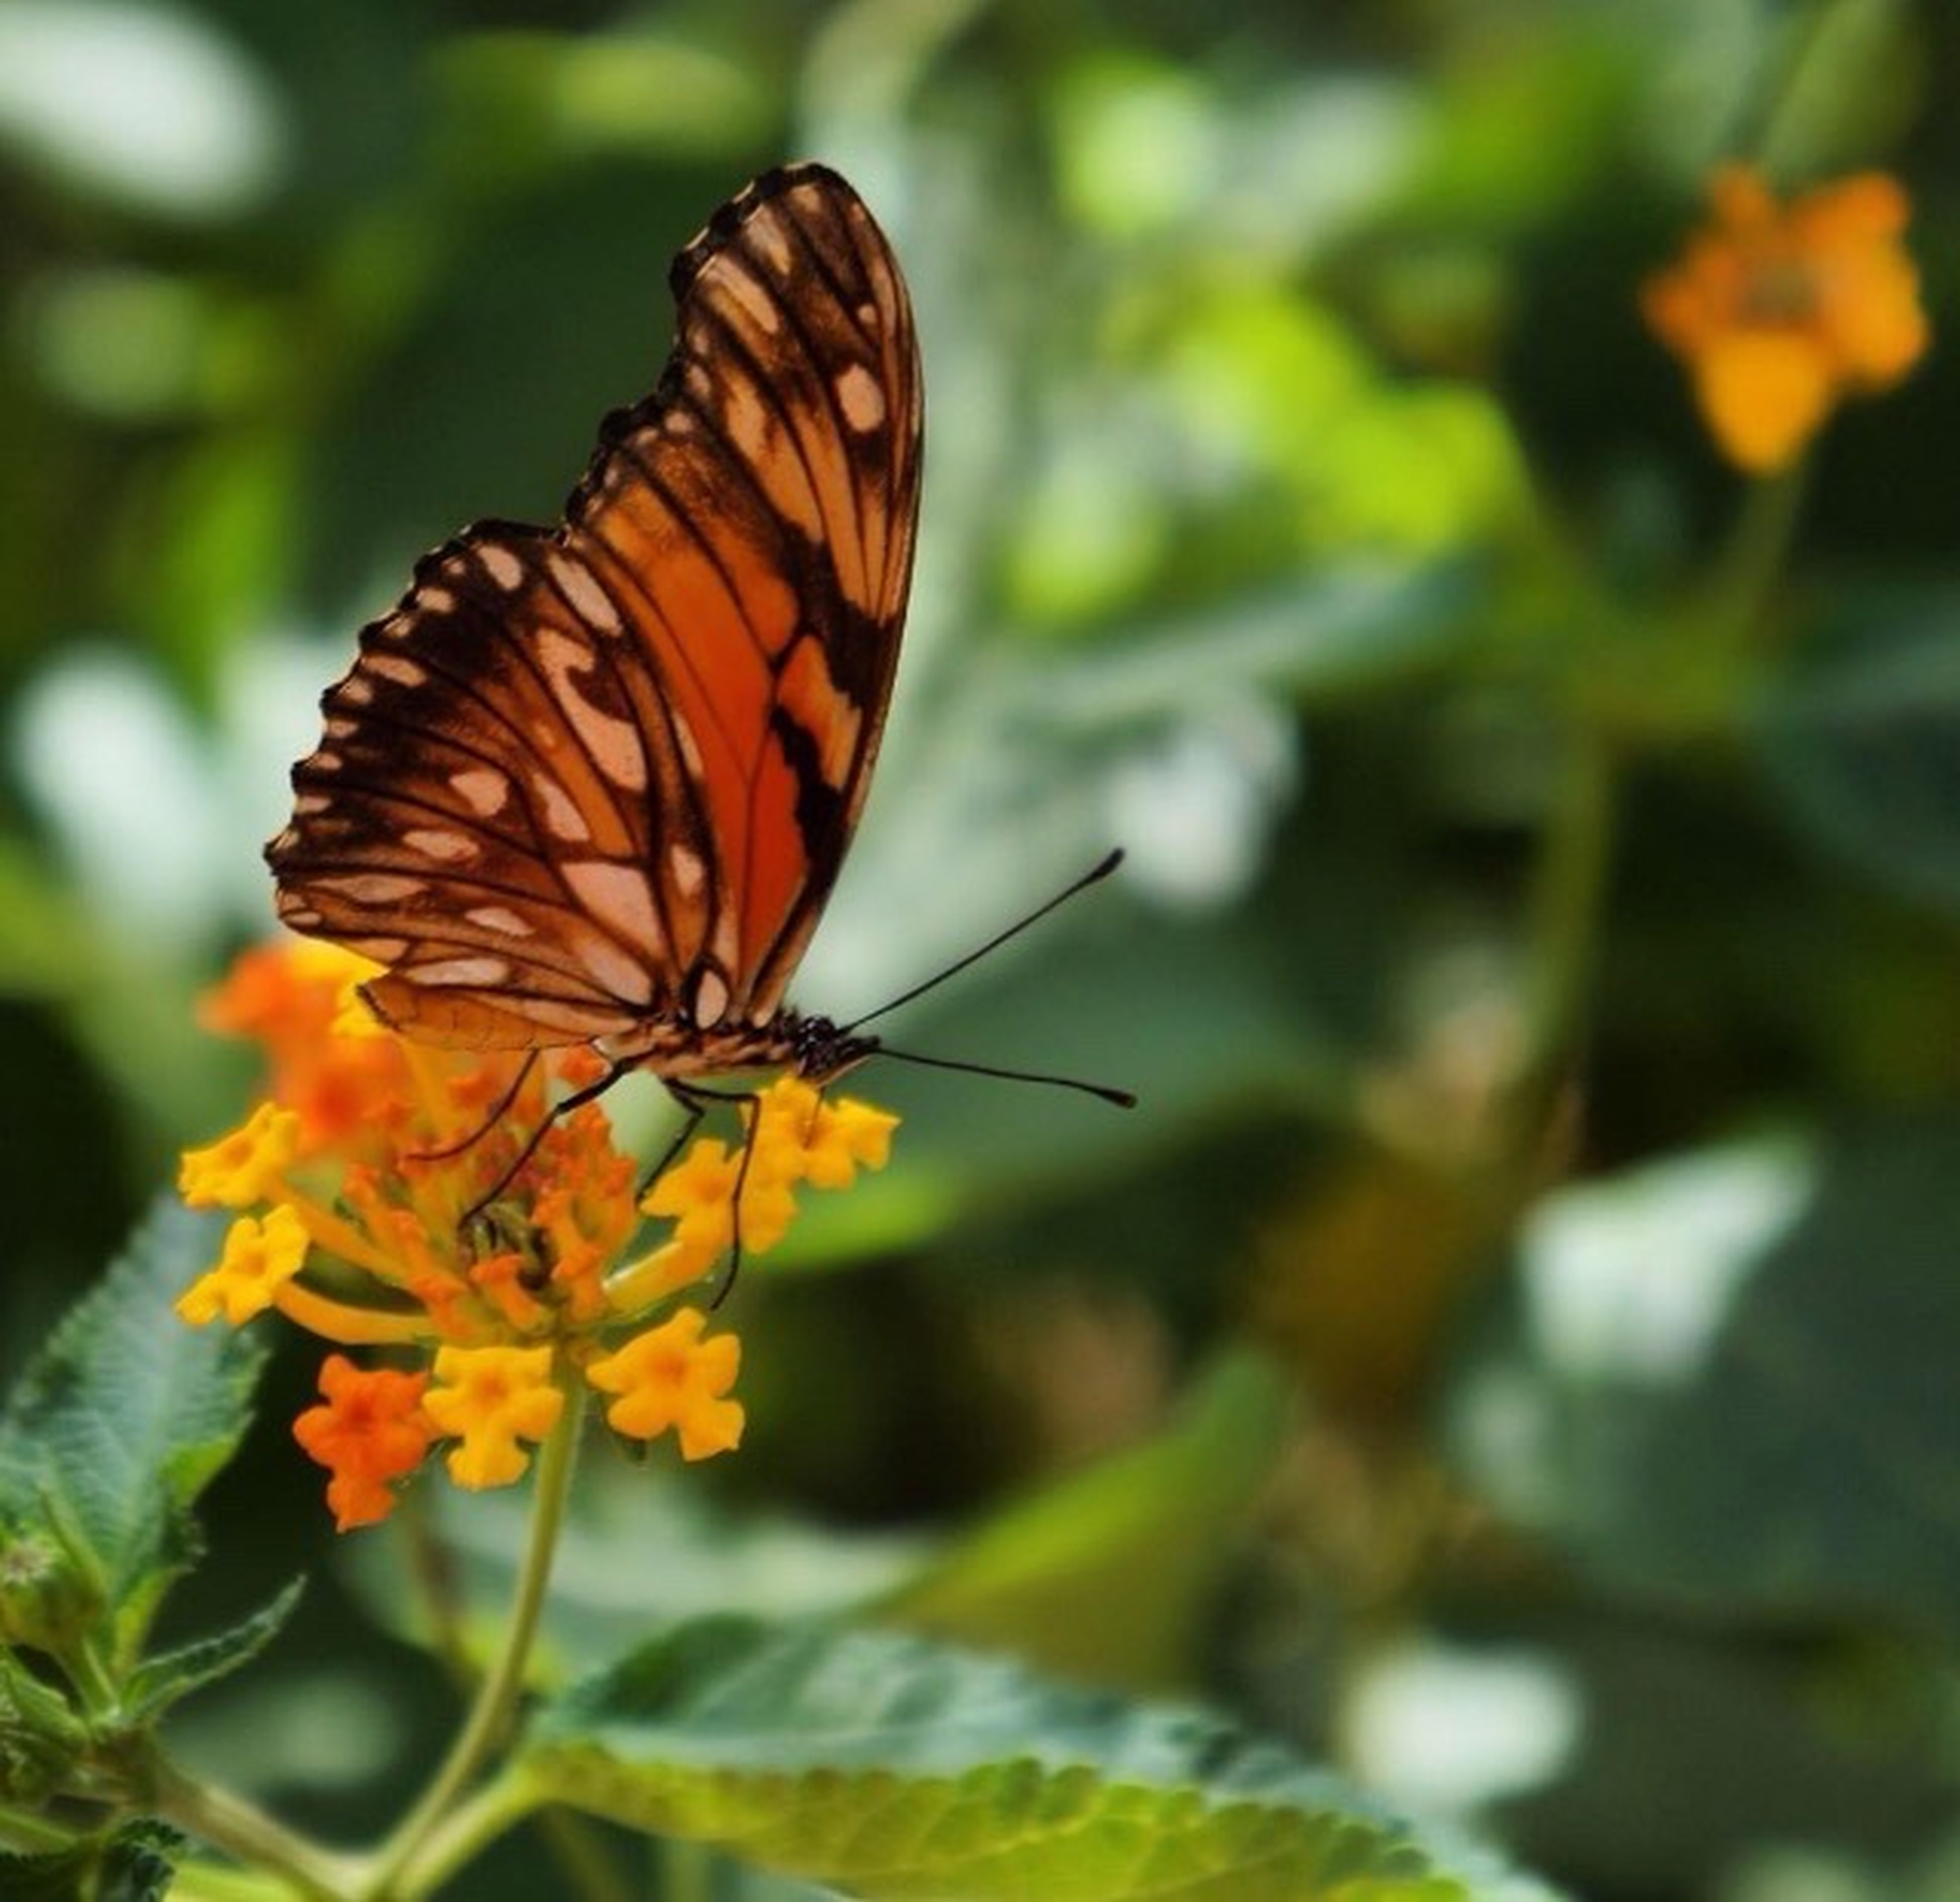 butterfly - insect, insect, one animal, animals in the wild, focus on foreground, animal themes, nature, close-up, beauty in nature, plant, flower, orange color, outdoors, no people, fragility, animal wildlife, freshness, day, pollination